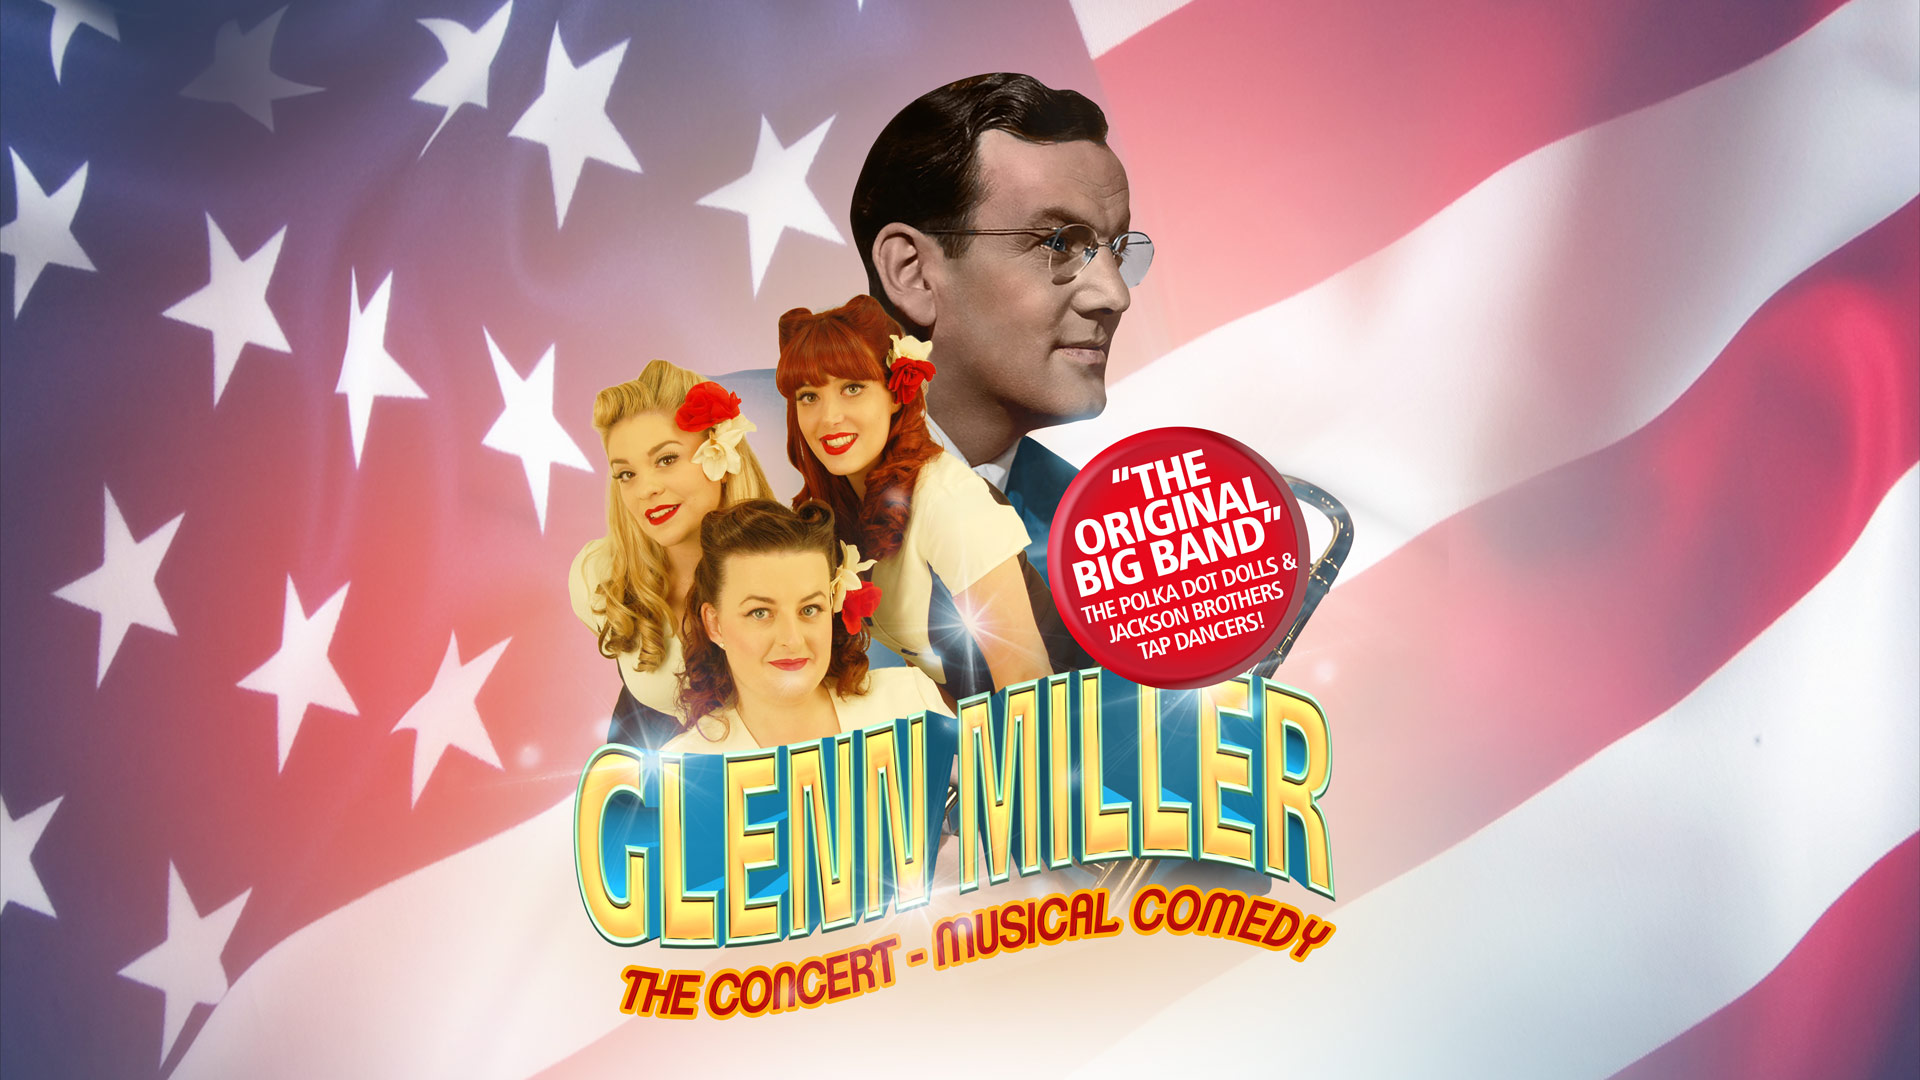 Glenn Miller The concert - musical comedy - original big band!